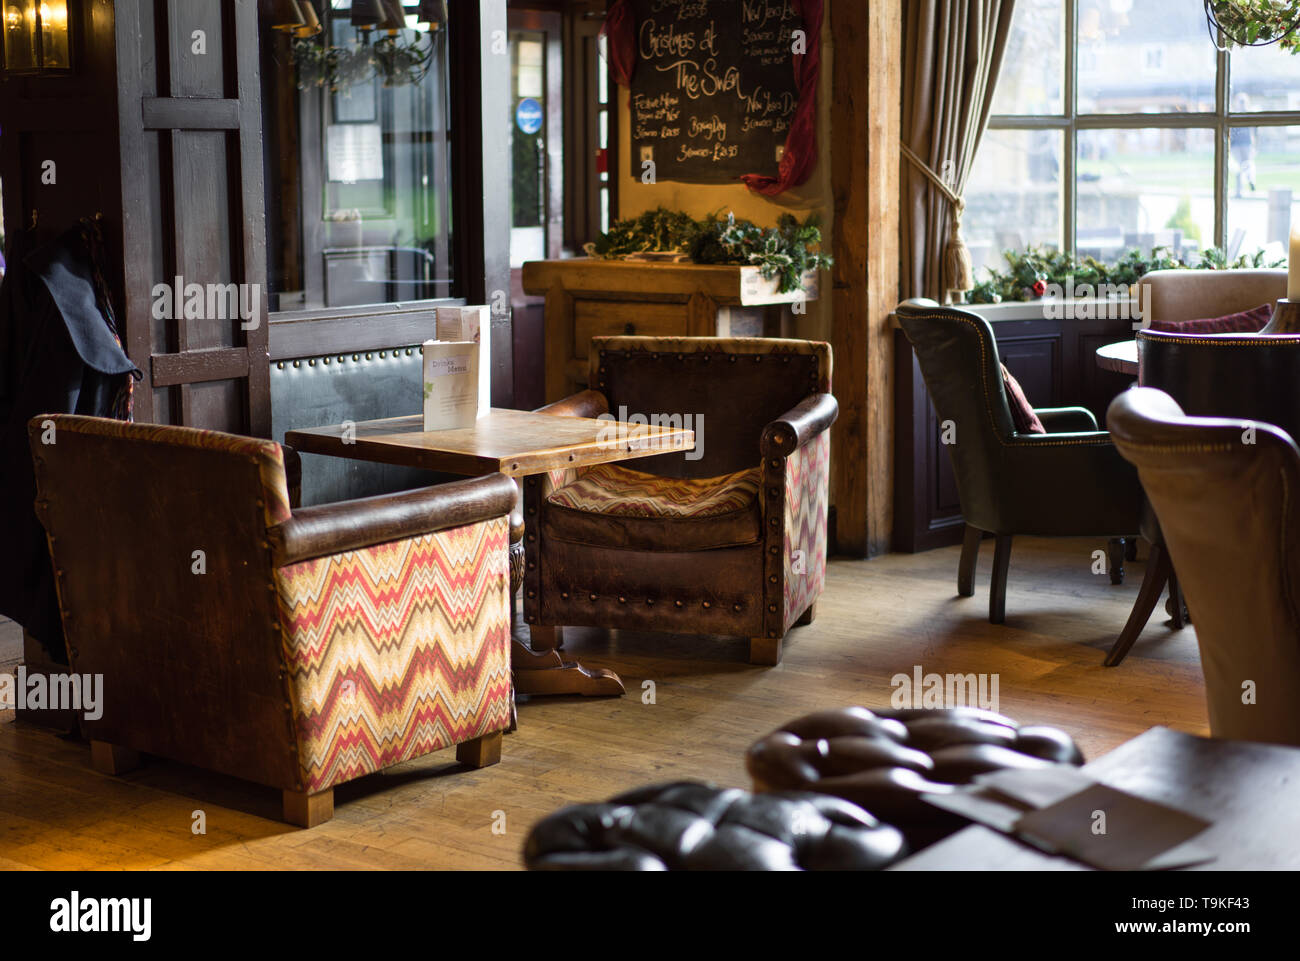 Interior of the Swan public House and hotel in Broadway with comfy old leather chairs and wooden panelling - Stock Image